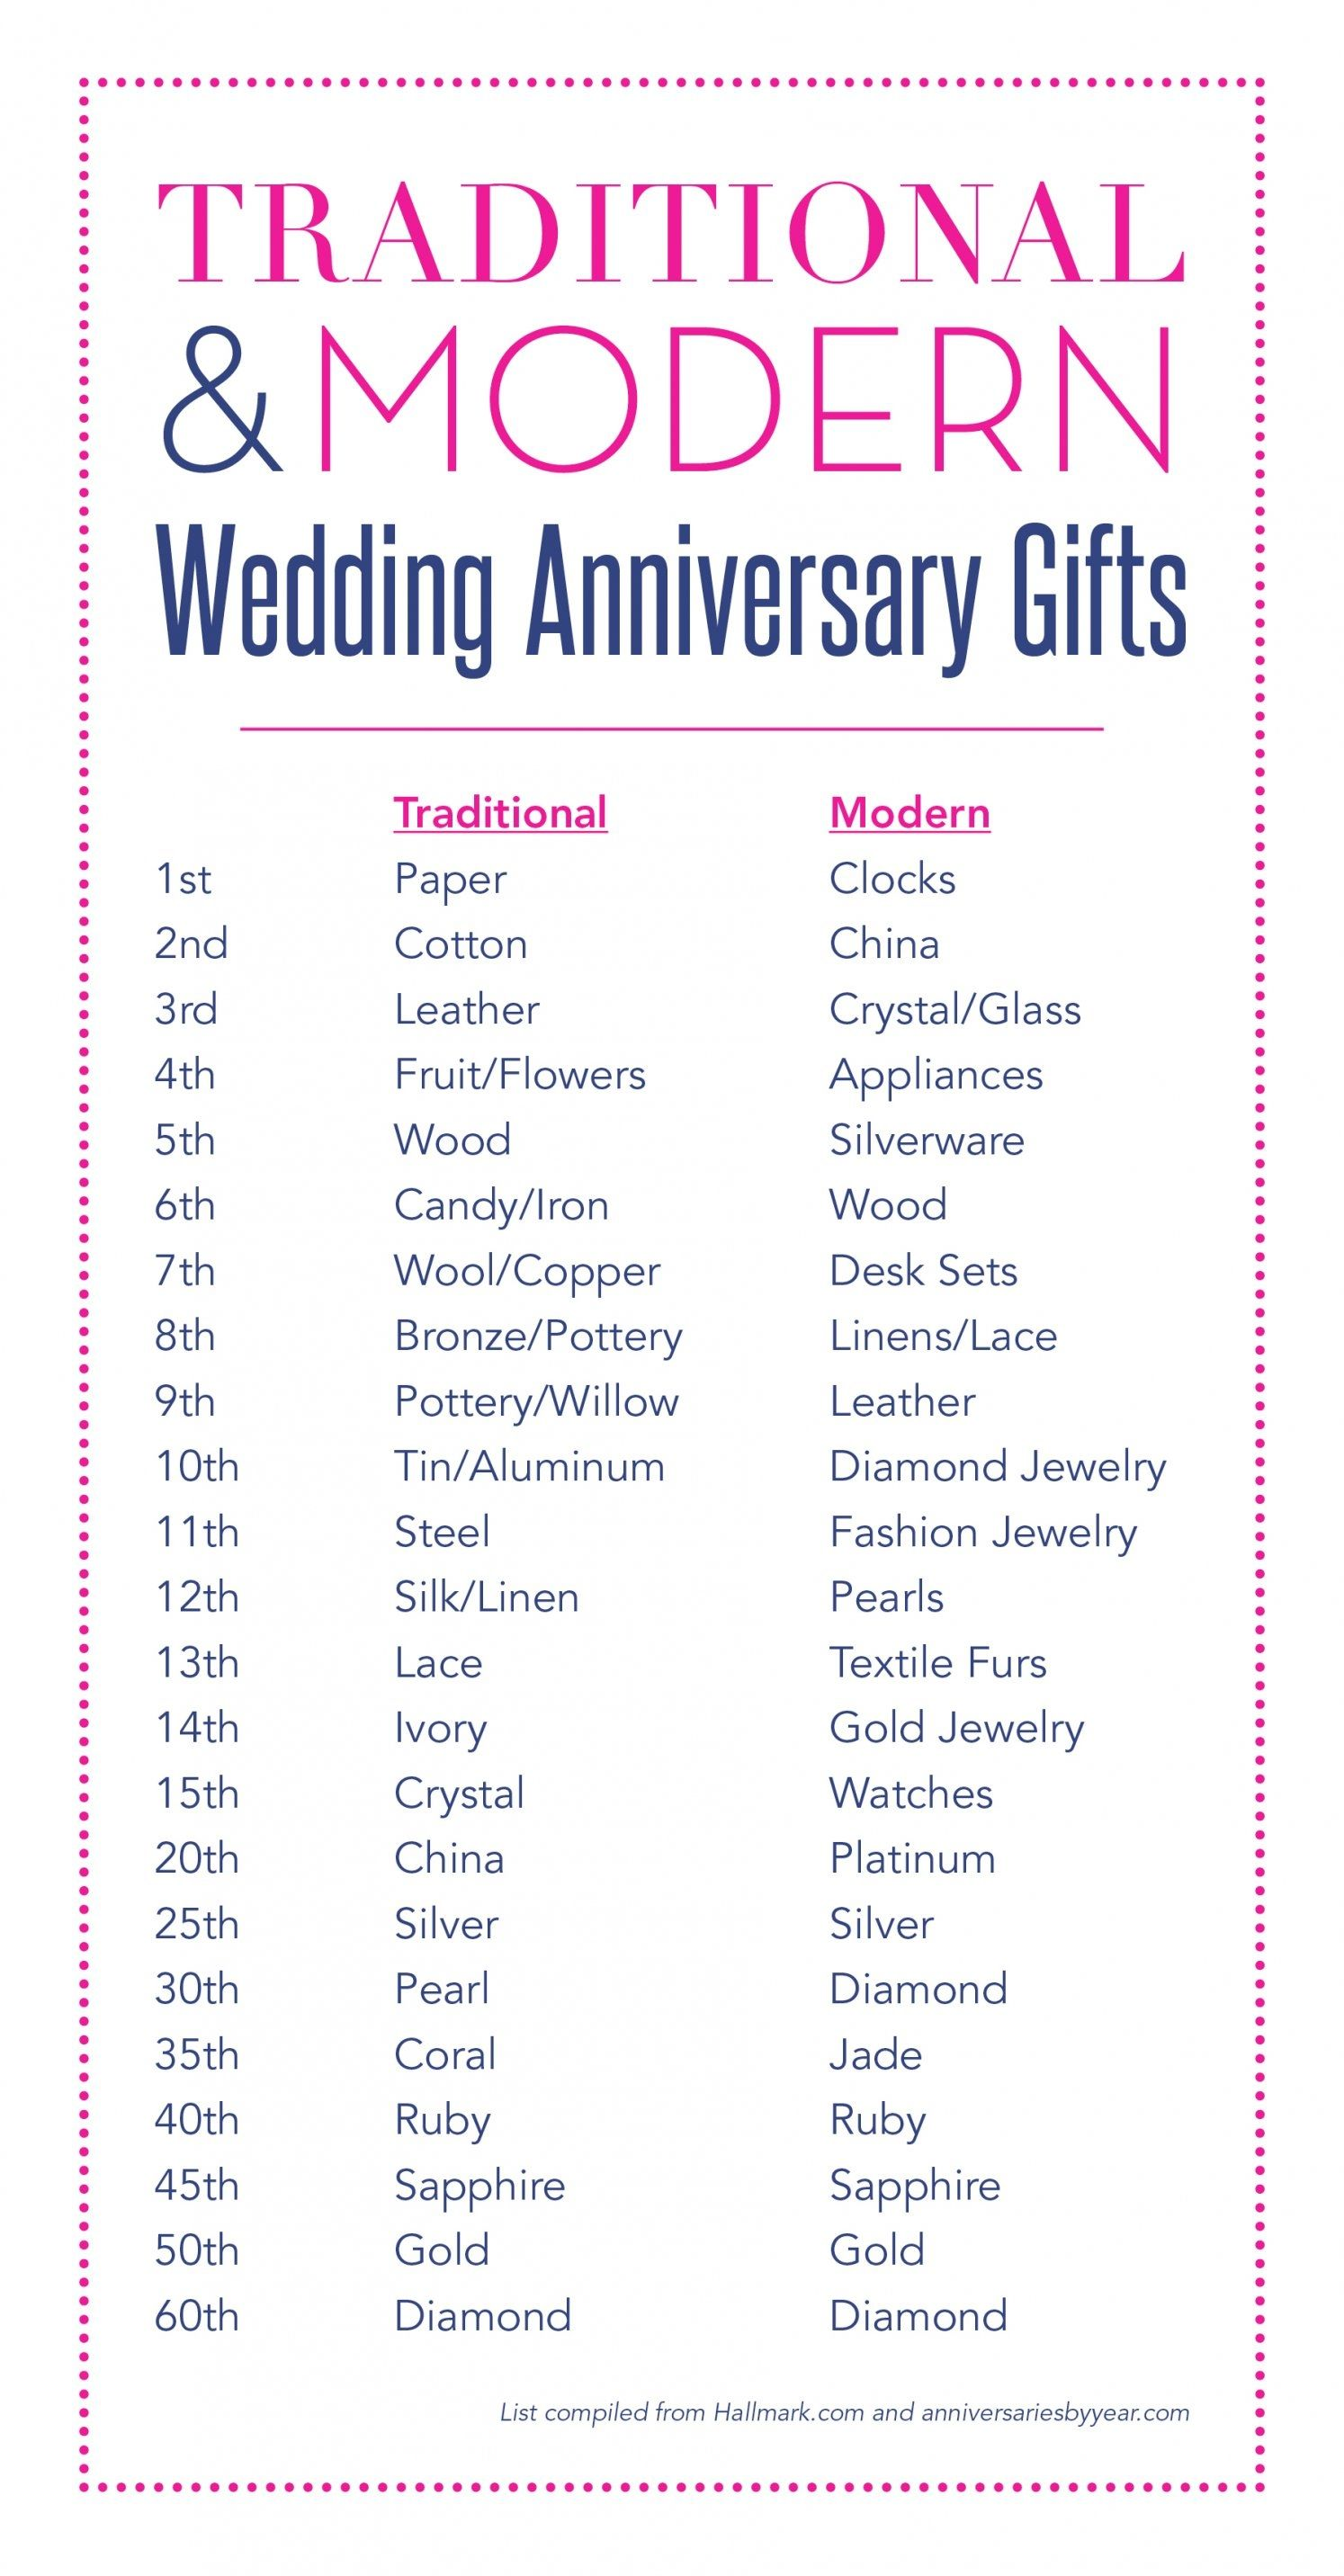 32 Traditional Wedding Anniversary Gifts Ideas